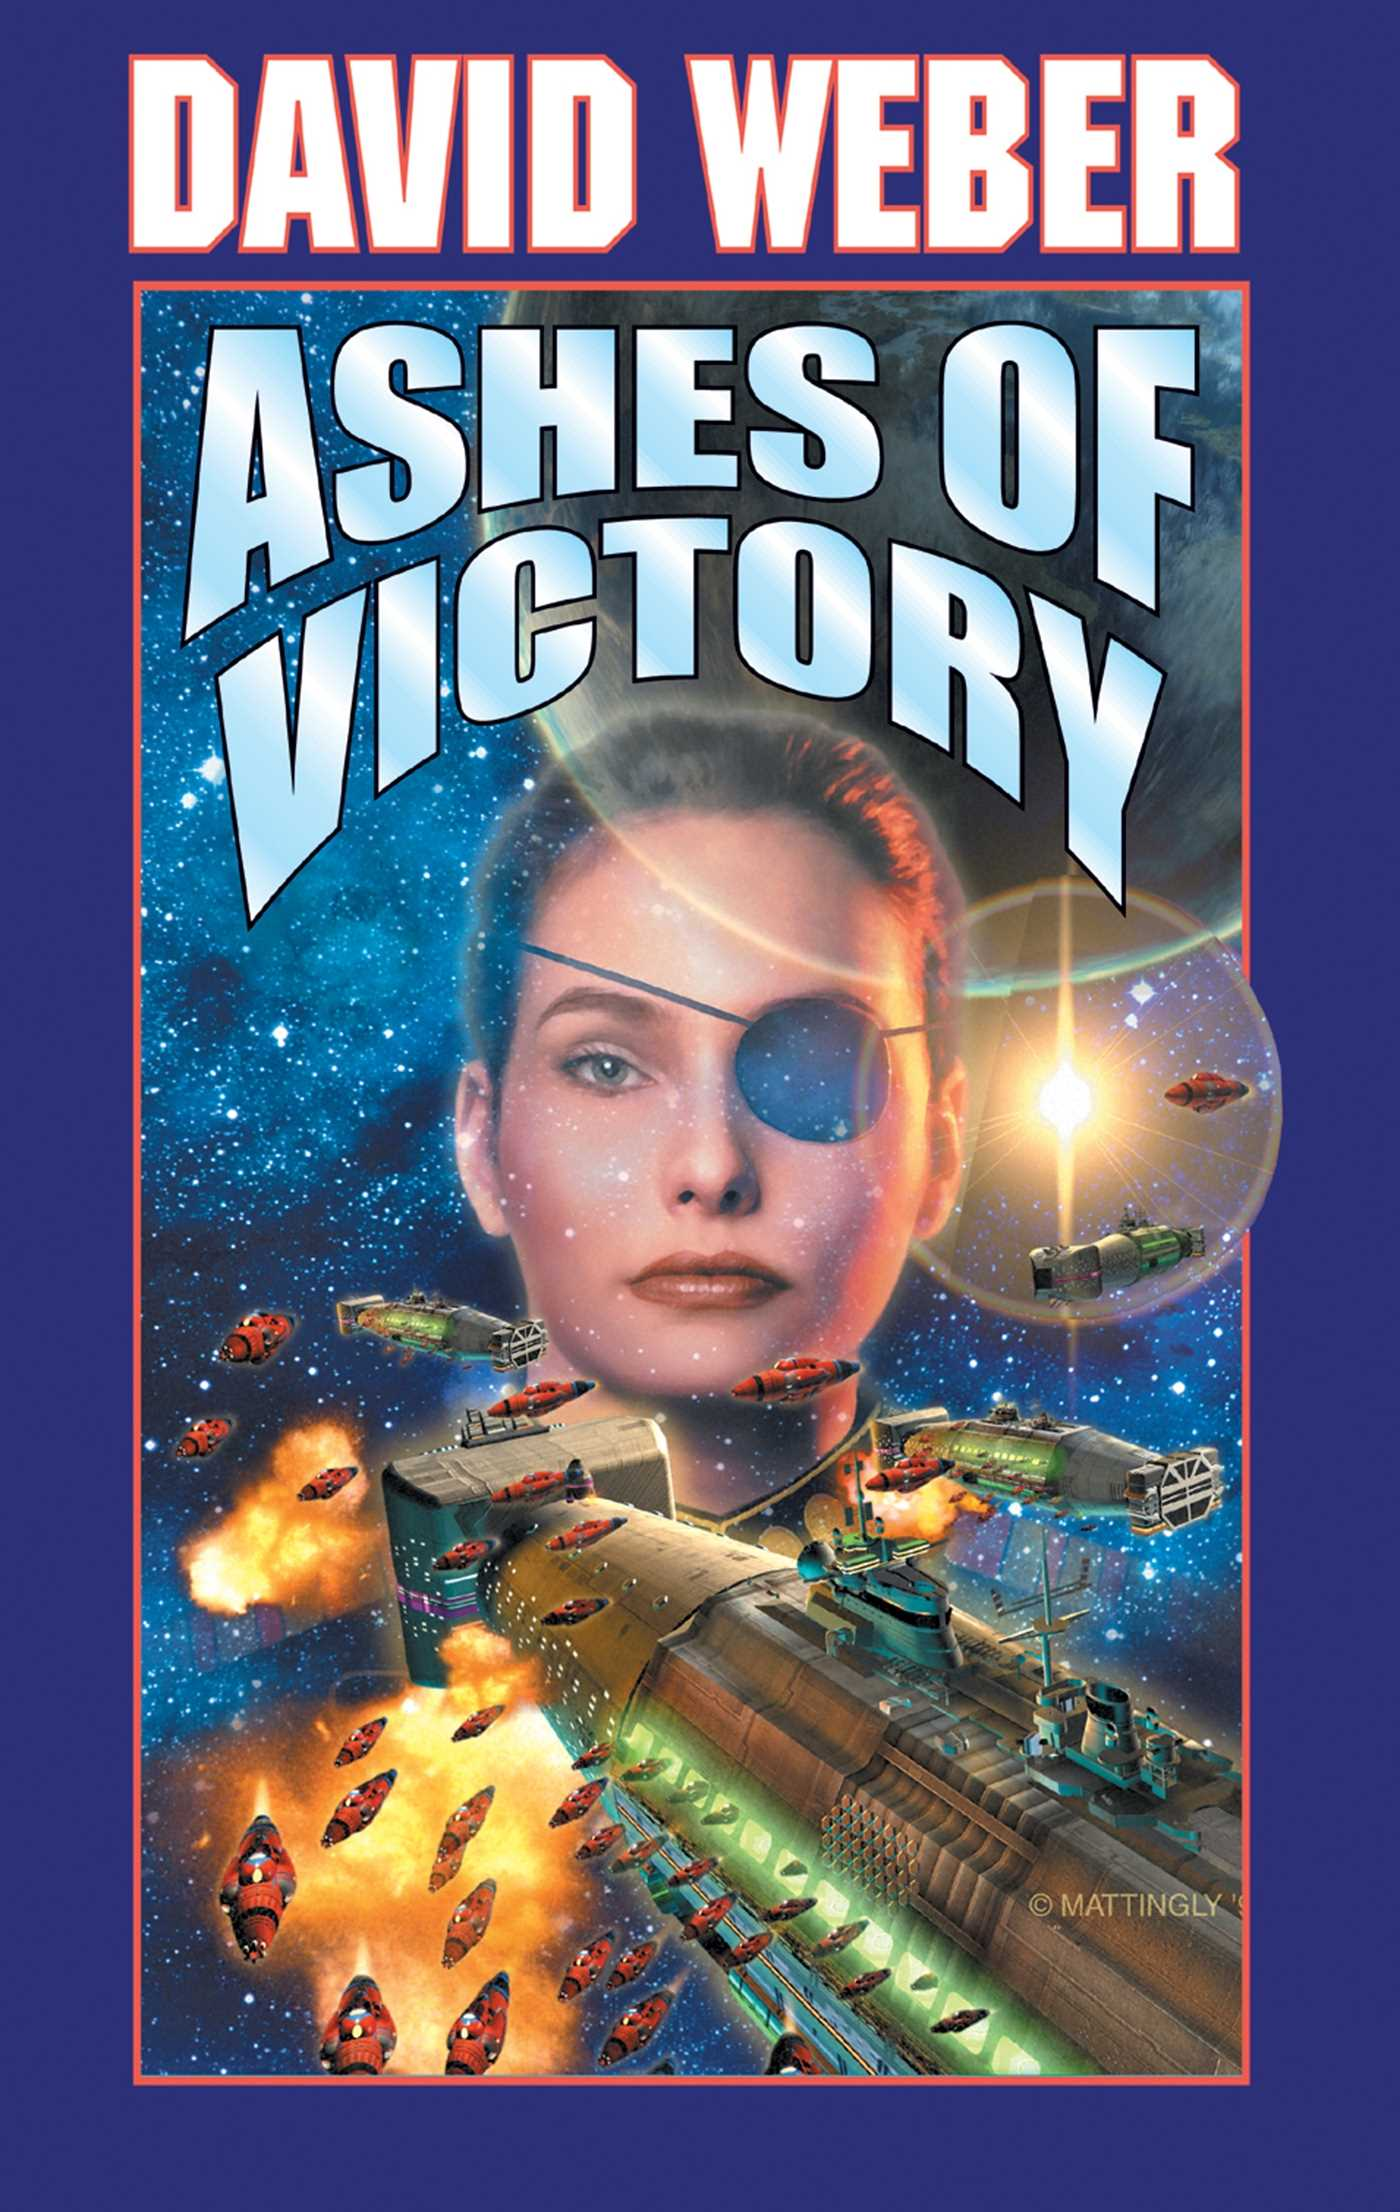 Ashes-of-victory-9780671578541_hr